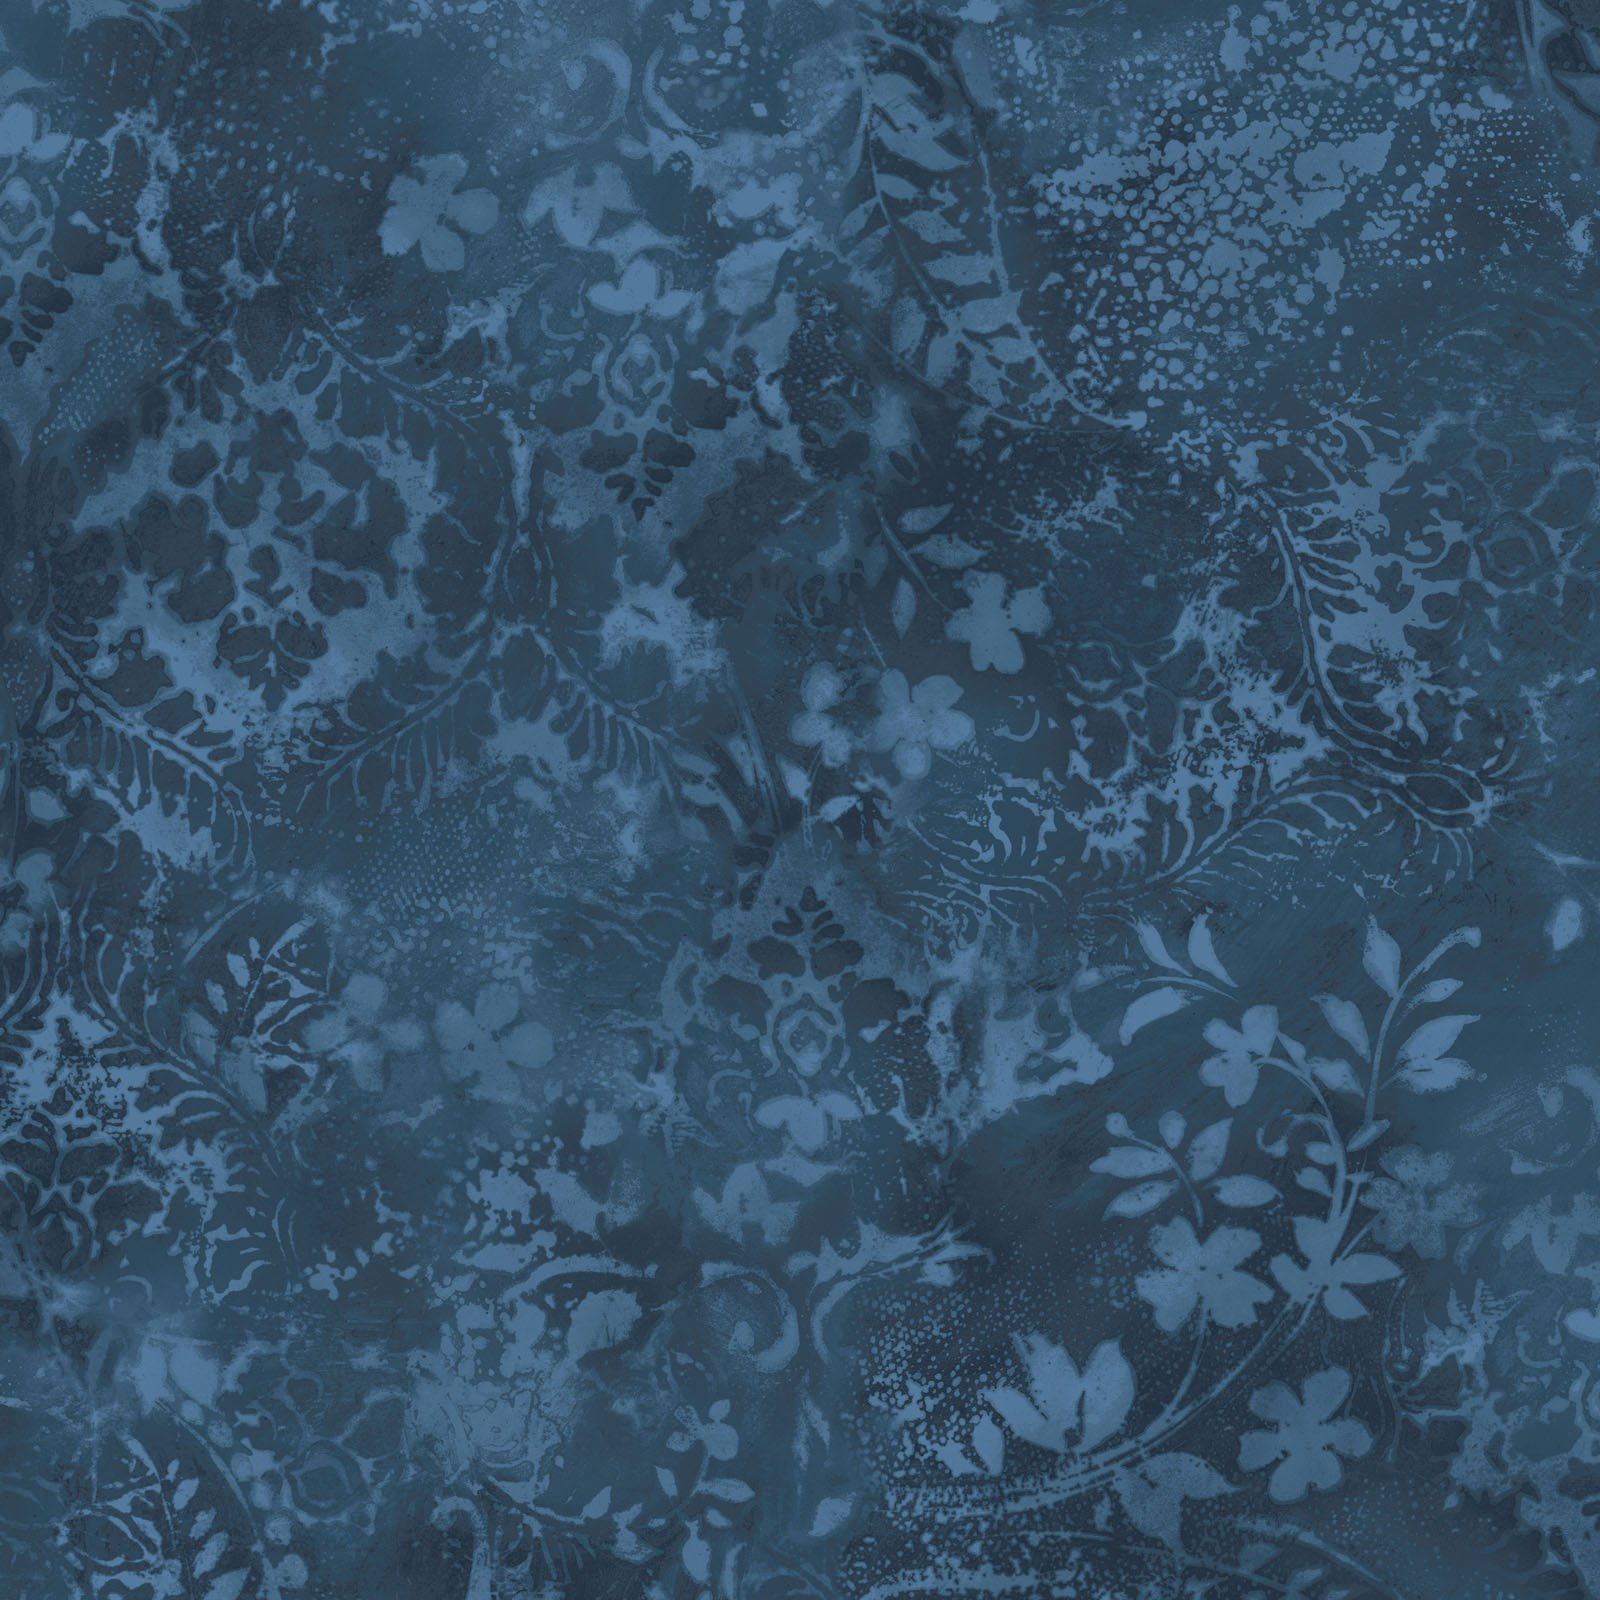 EESC-QBD105 B - BEAUTIFUL BACKING 108 VINTAGE DAMASK BY MAYWOOD DEEP BLUE - ARRIVING IN MAY 2021